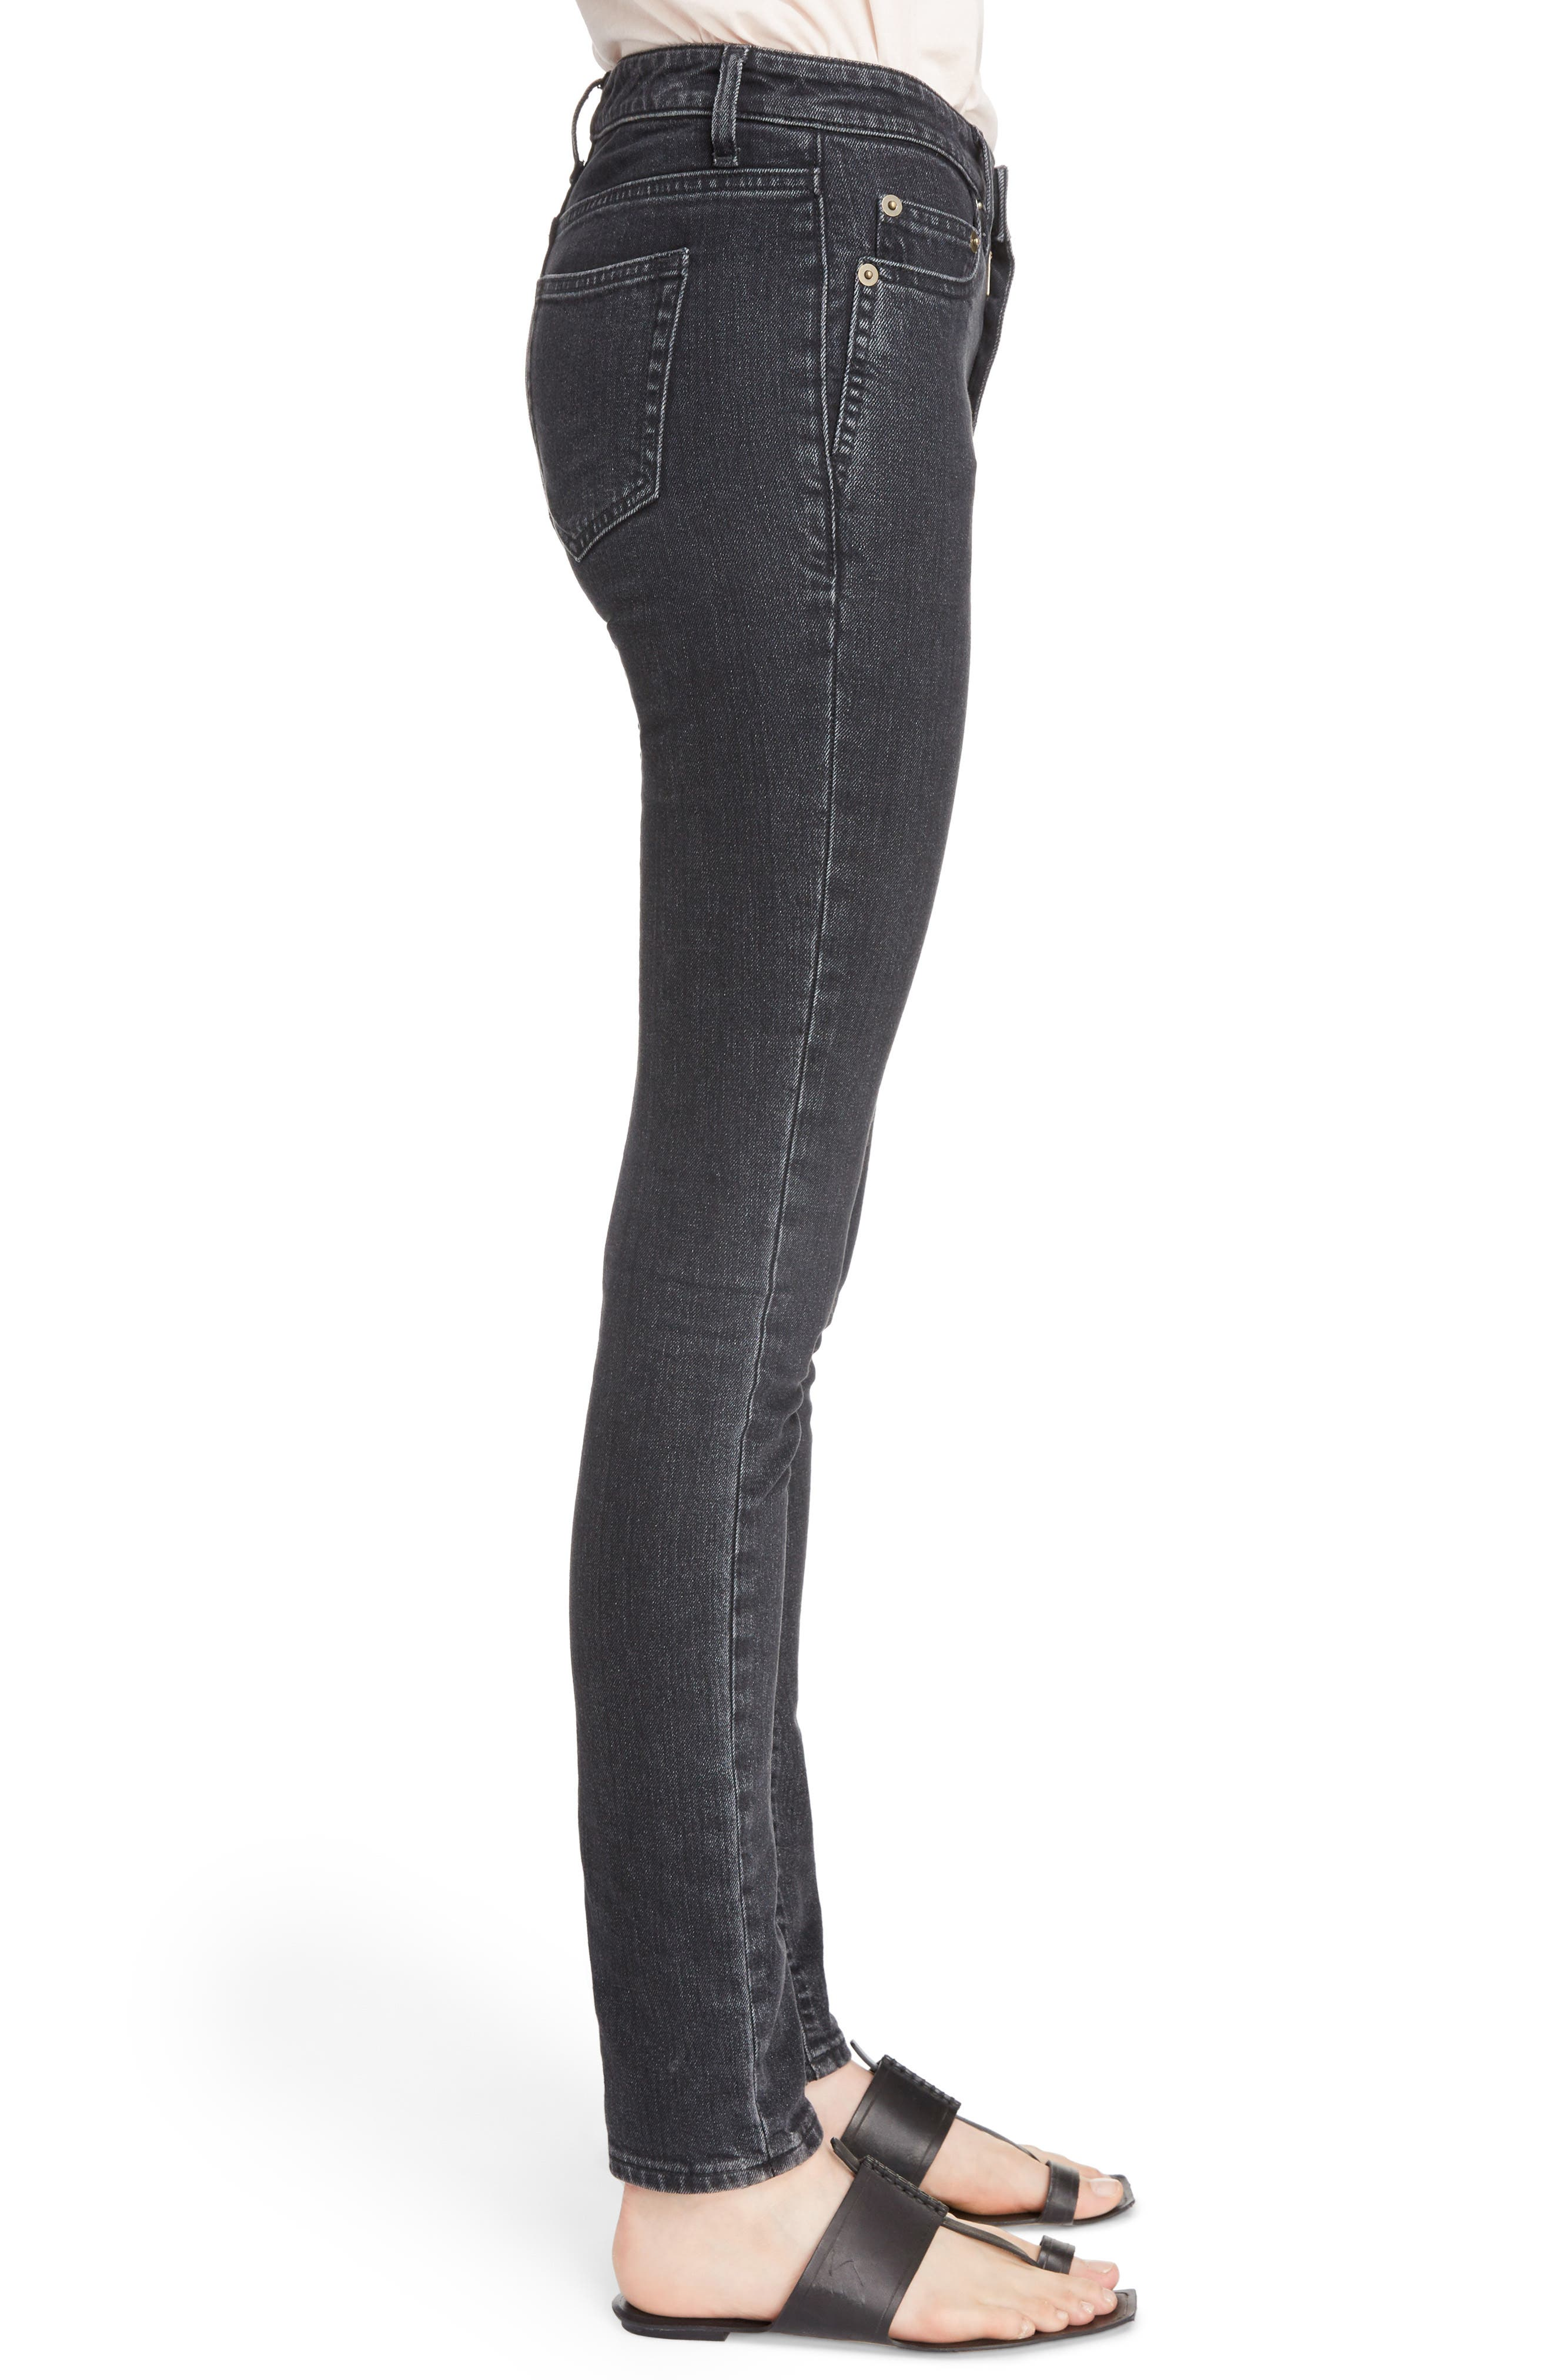 Skinny Stretch Jeans,                             Alternate thumbnail 3, color,                             002